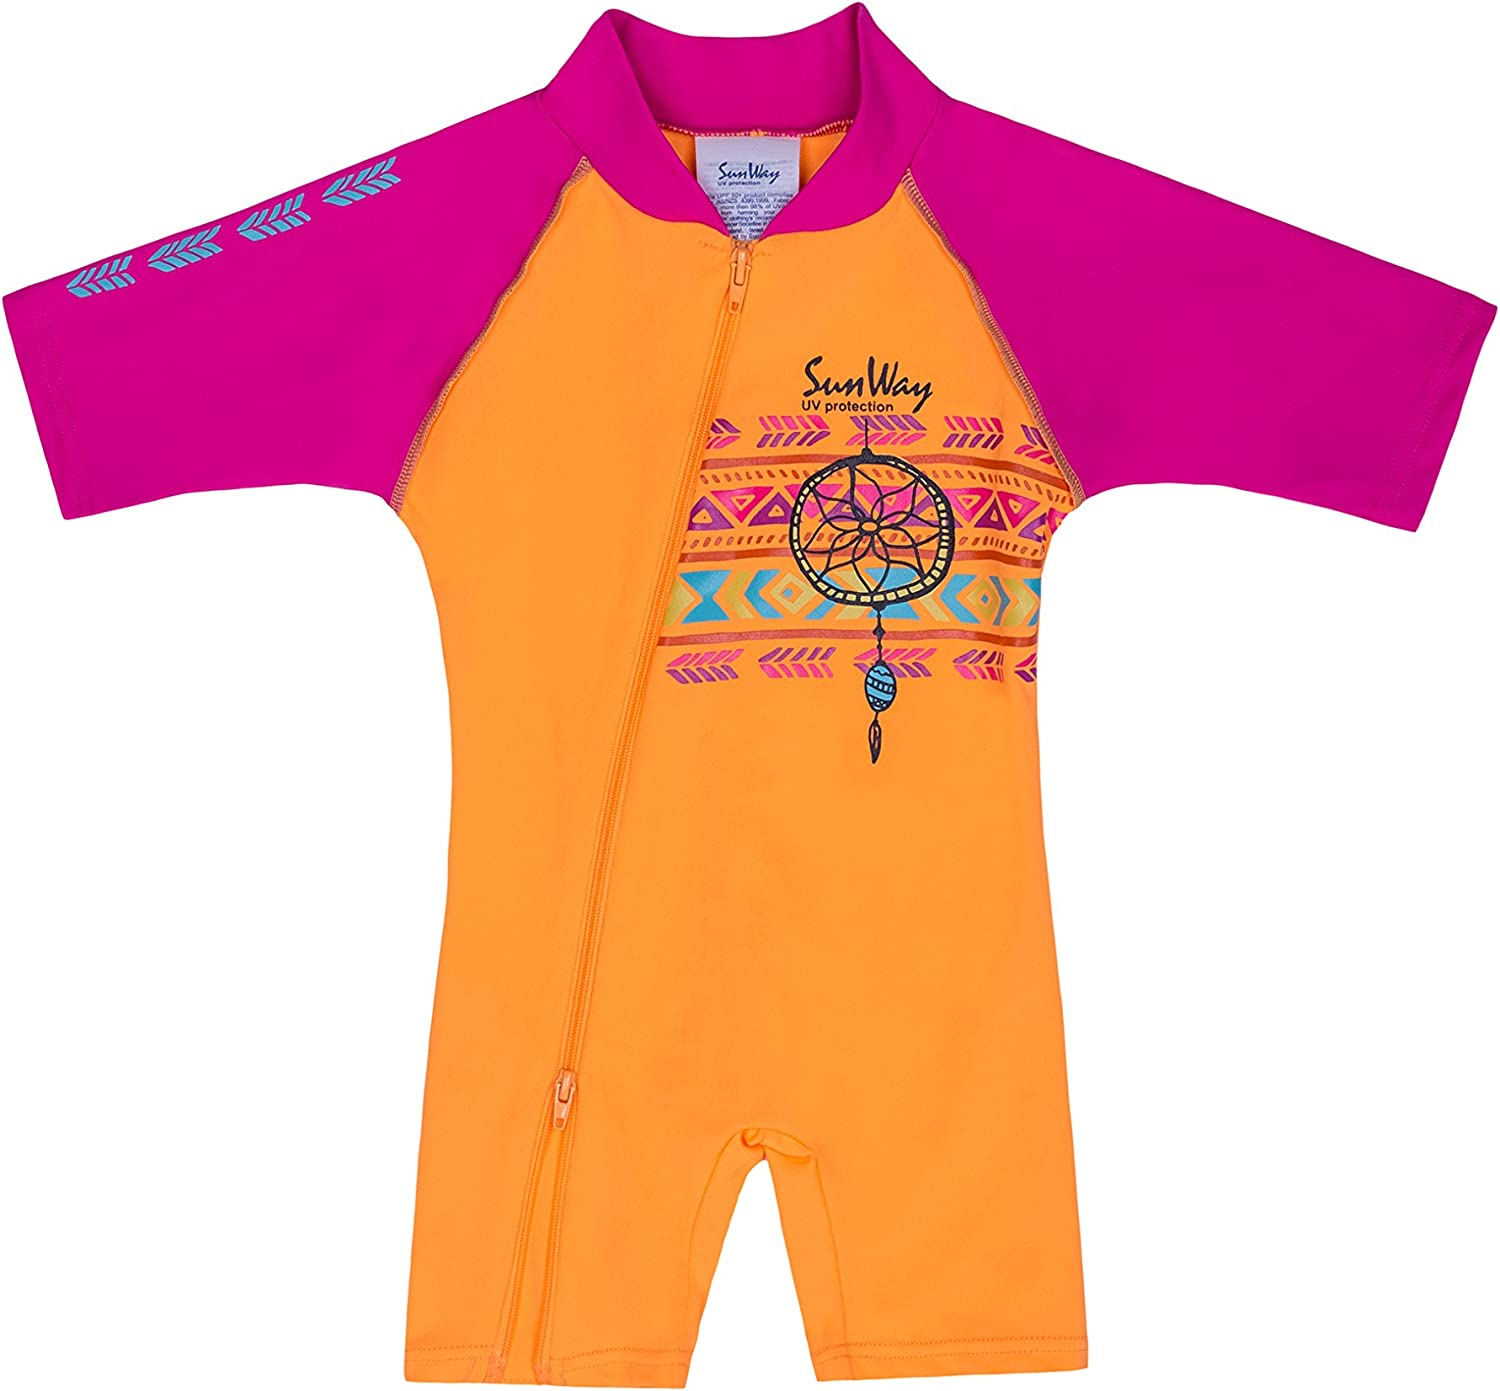 6-36 Months Sunway Baby Beach Swimwear One-Piece Swimsuit Sun Protection UV UPF50+